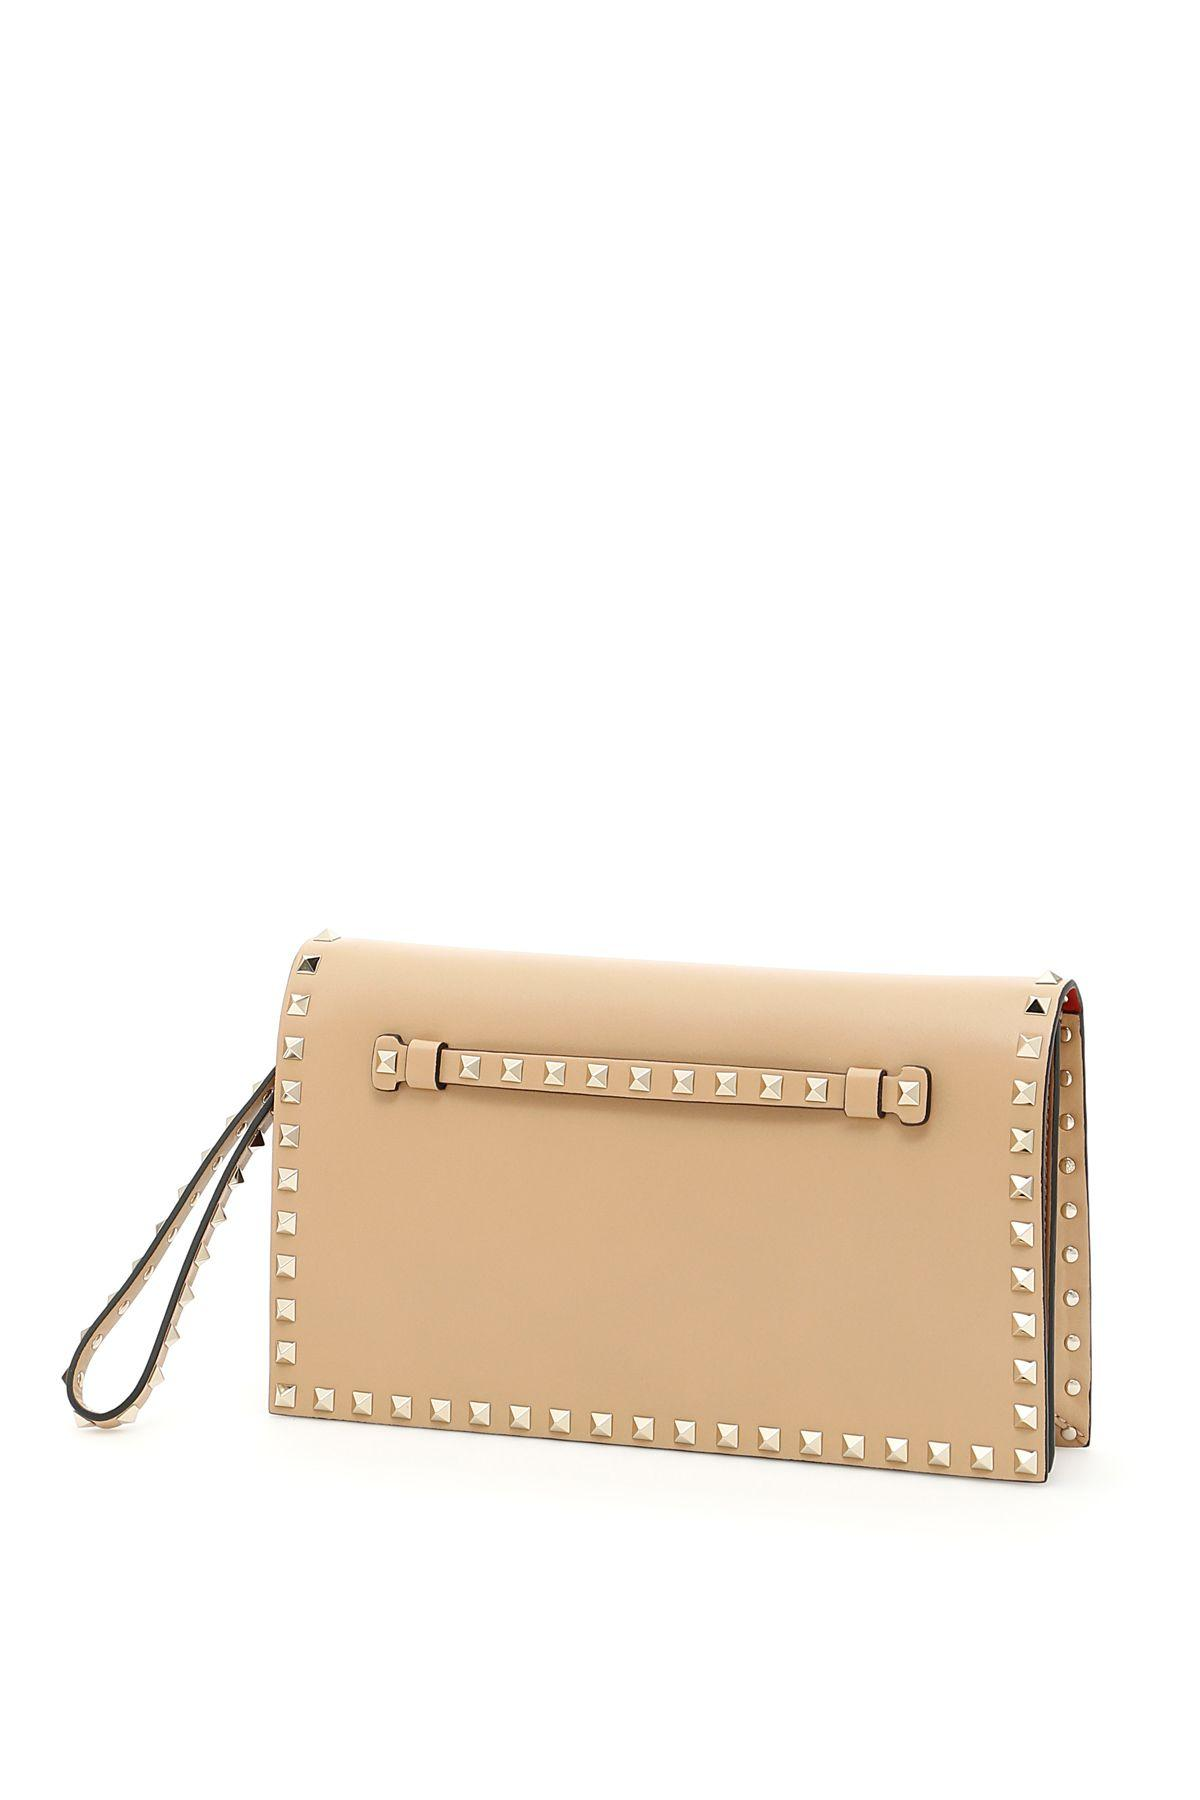 Valentino Garavani Rockstud Leather Clutch In Camel Rosebeige